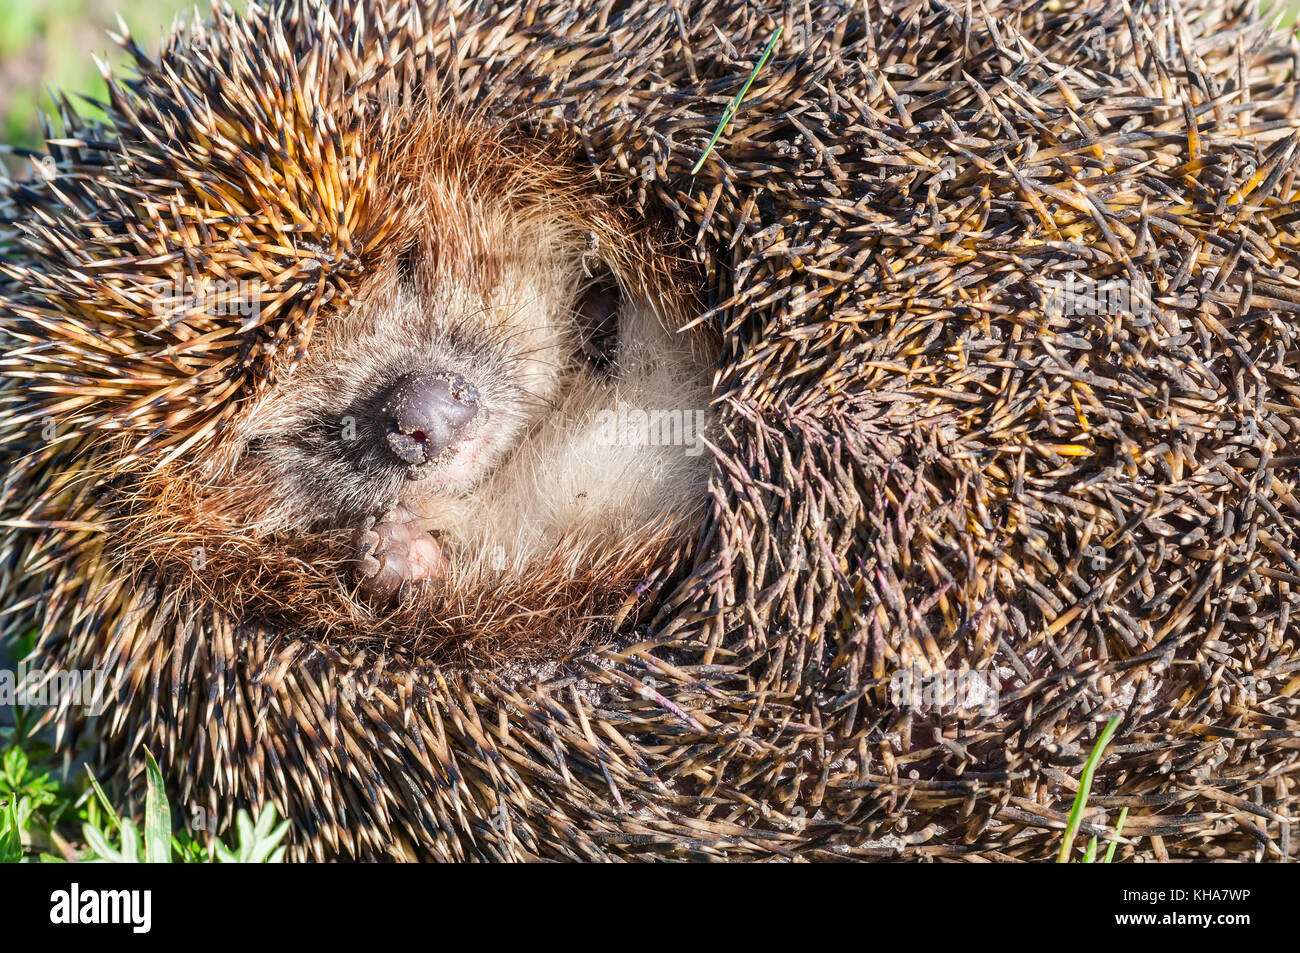 Portrait of cute and pretty hedgehog sleeping in the grass close up - Stock Image